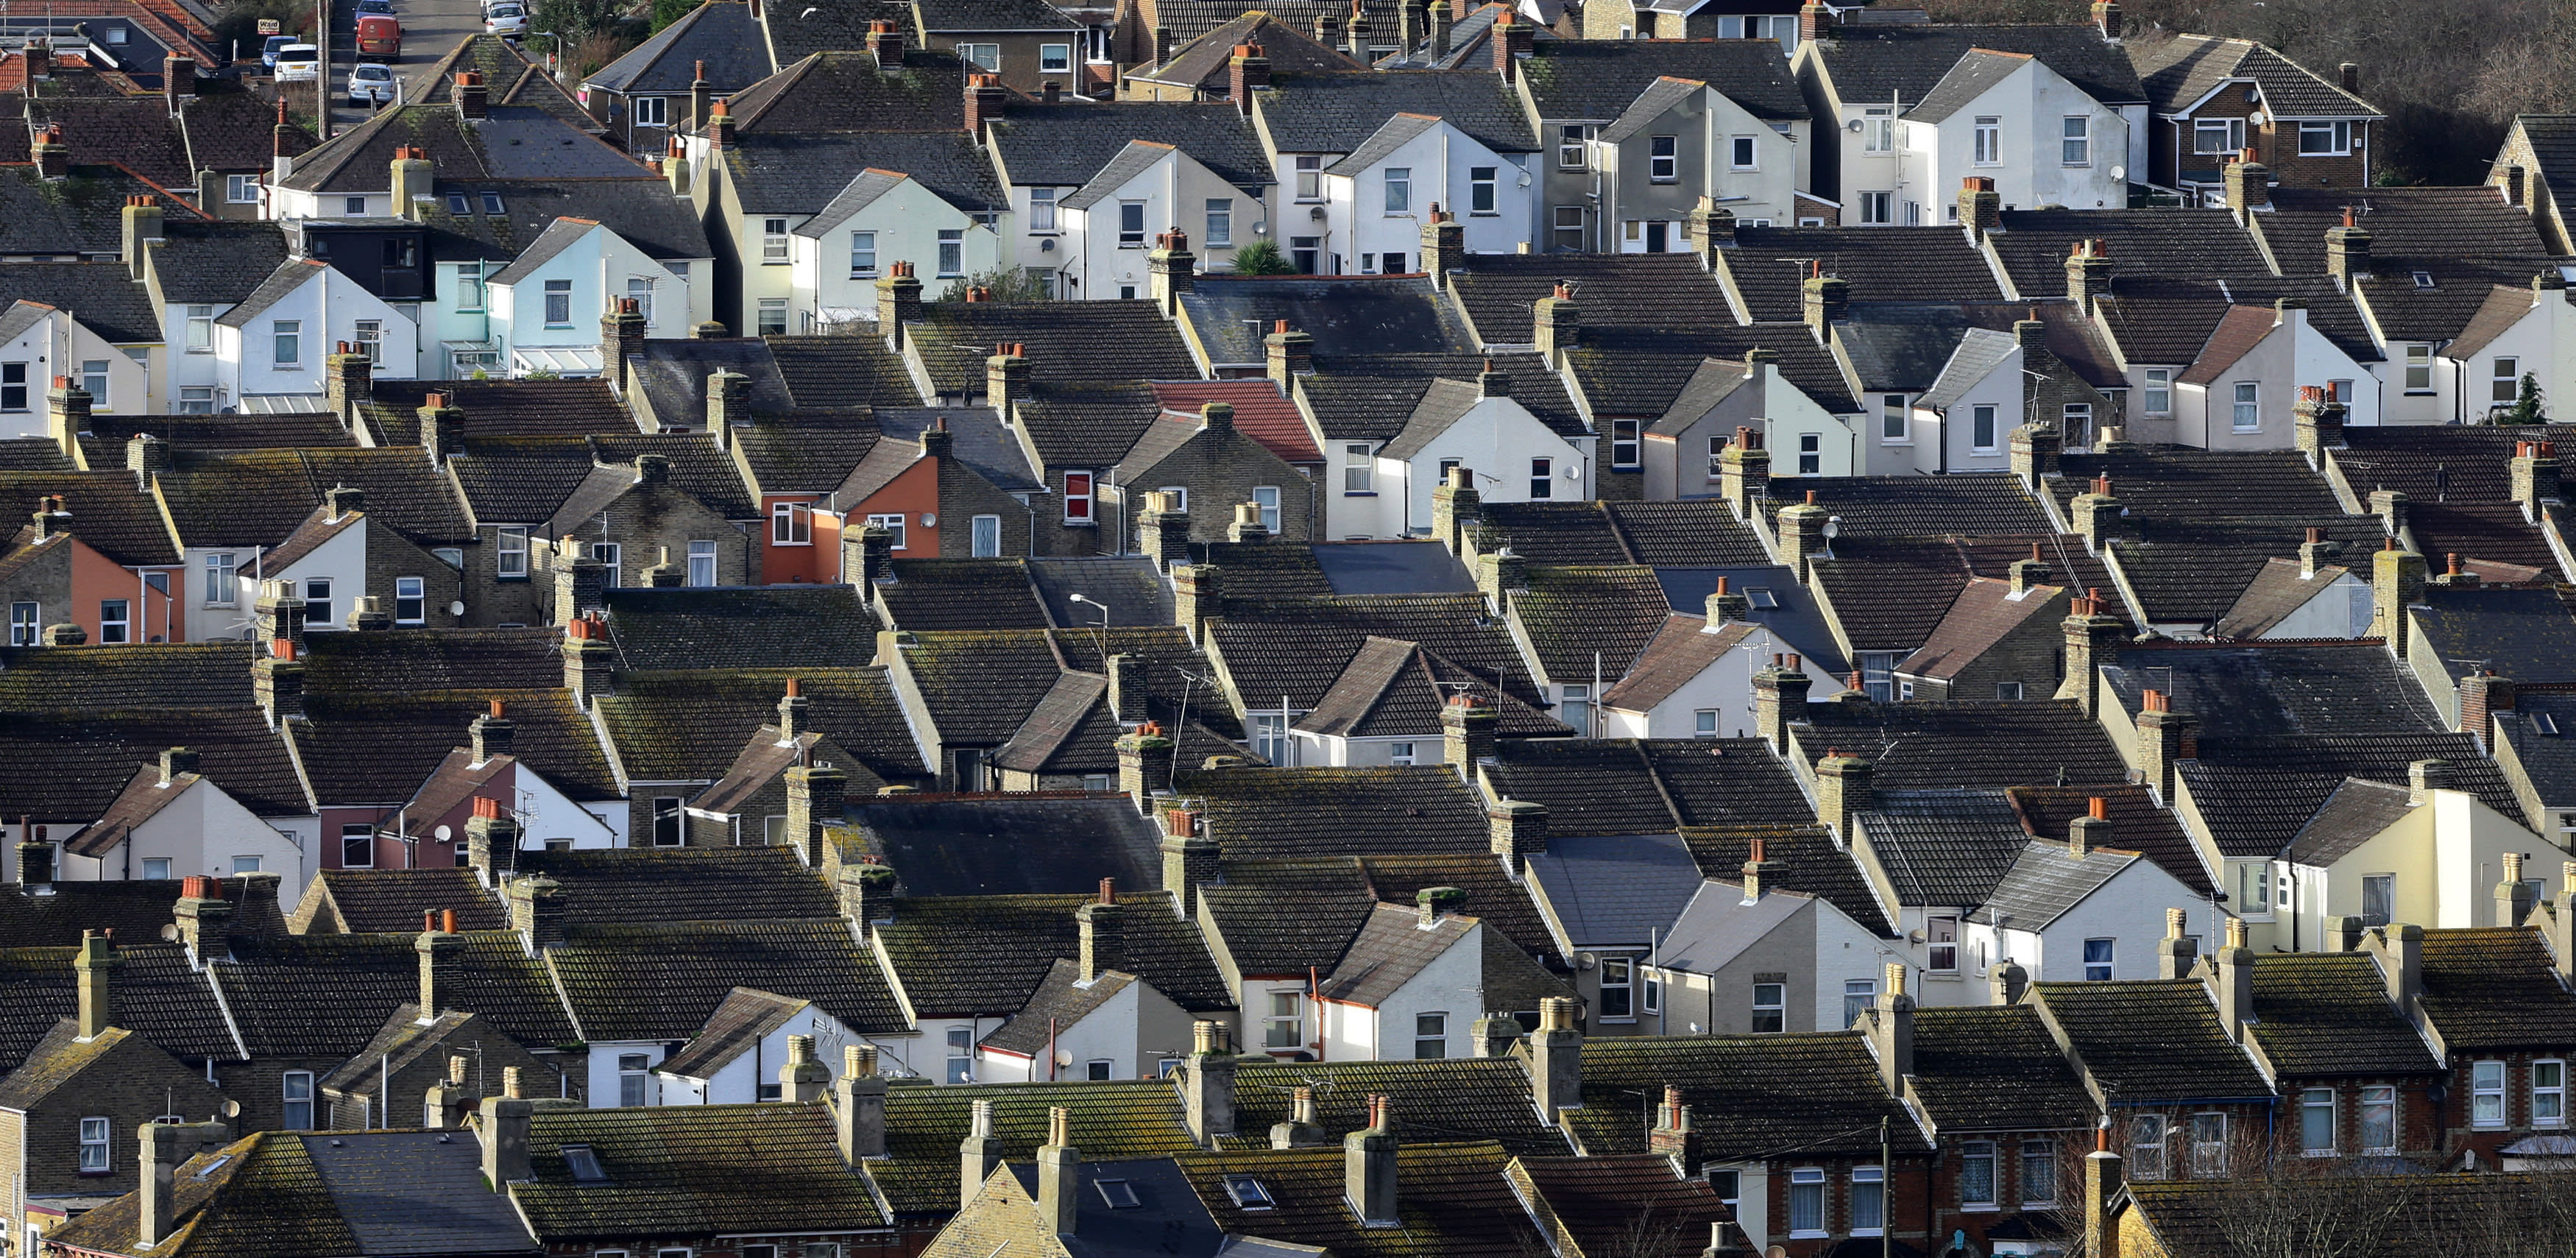 Mortgage arrears up for first time since 2016